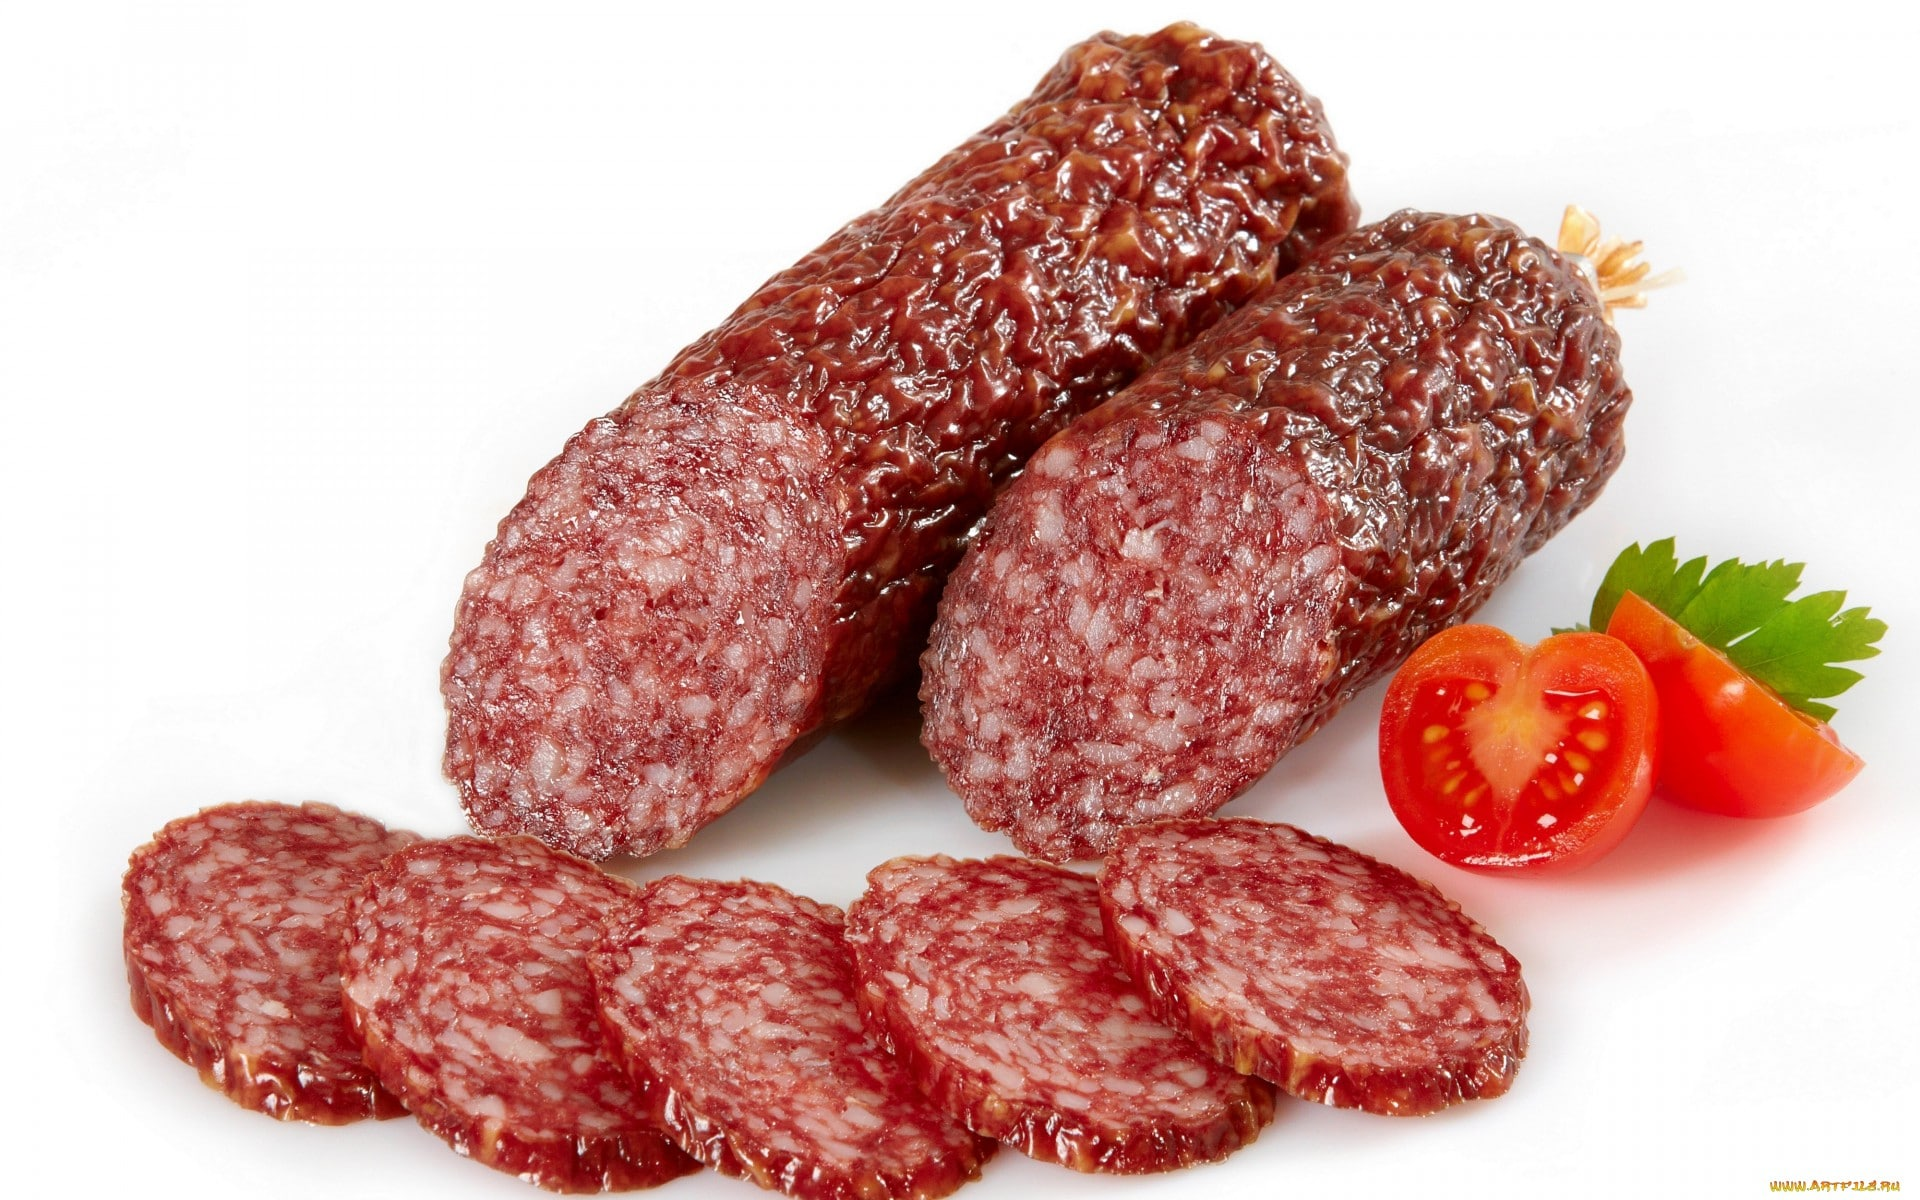 fermented meat, fermented sausage